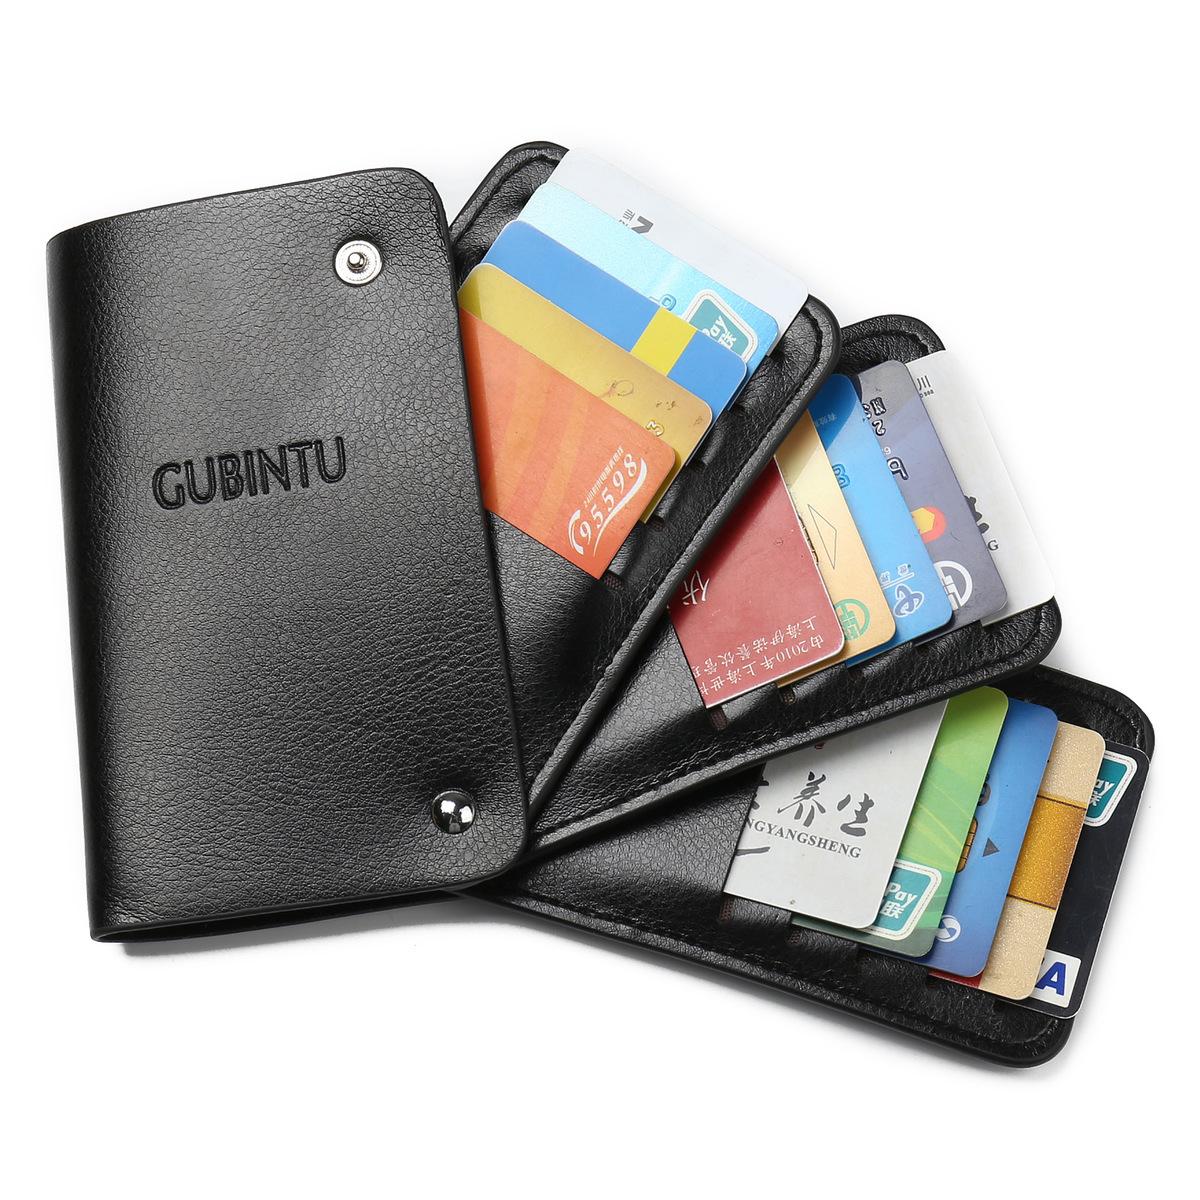 2018 New Men Women PU Leather Plastic Card Holder Bank ID Multi Card Case Rotating Business Card Men Wallets Purse